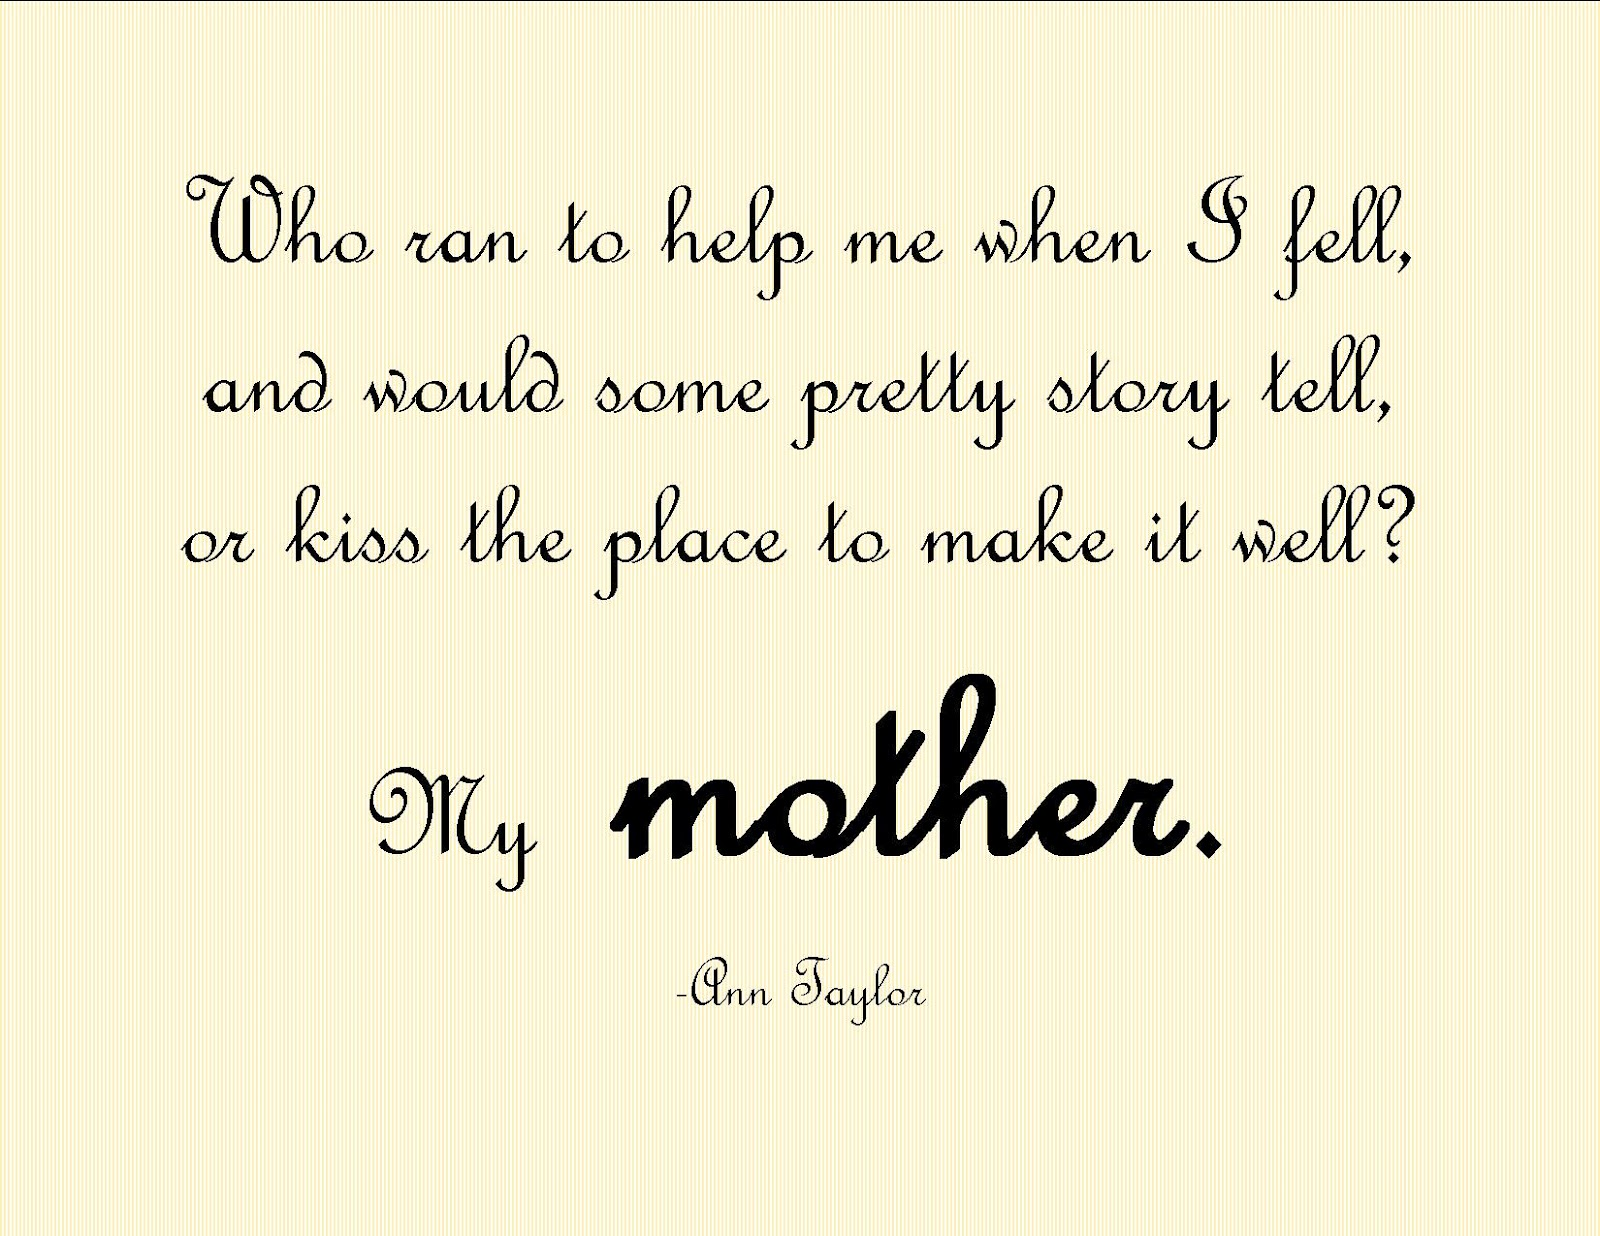 Quotes For Moms My Favorite Quotes On Mothers.printable Form  Pretty Providence